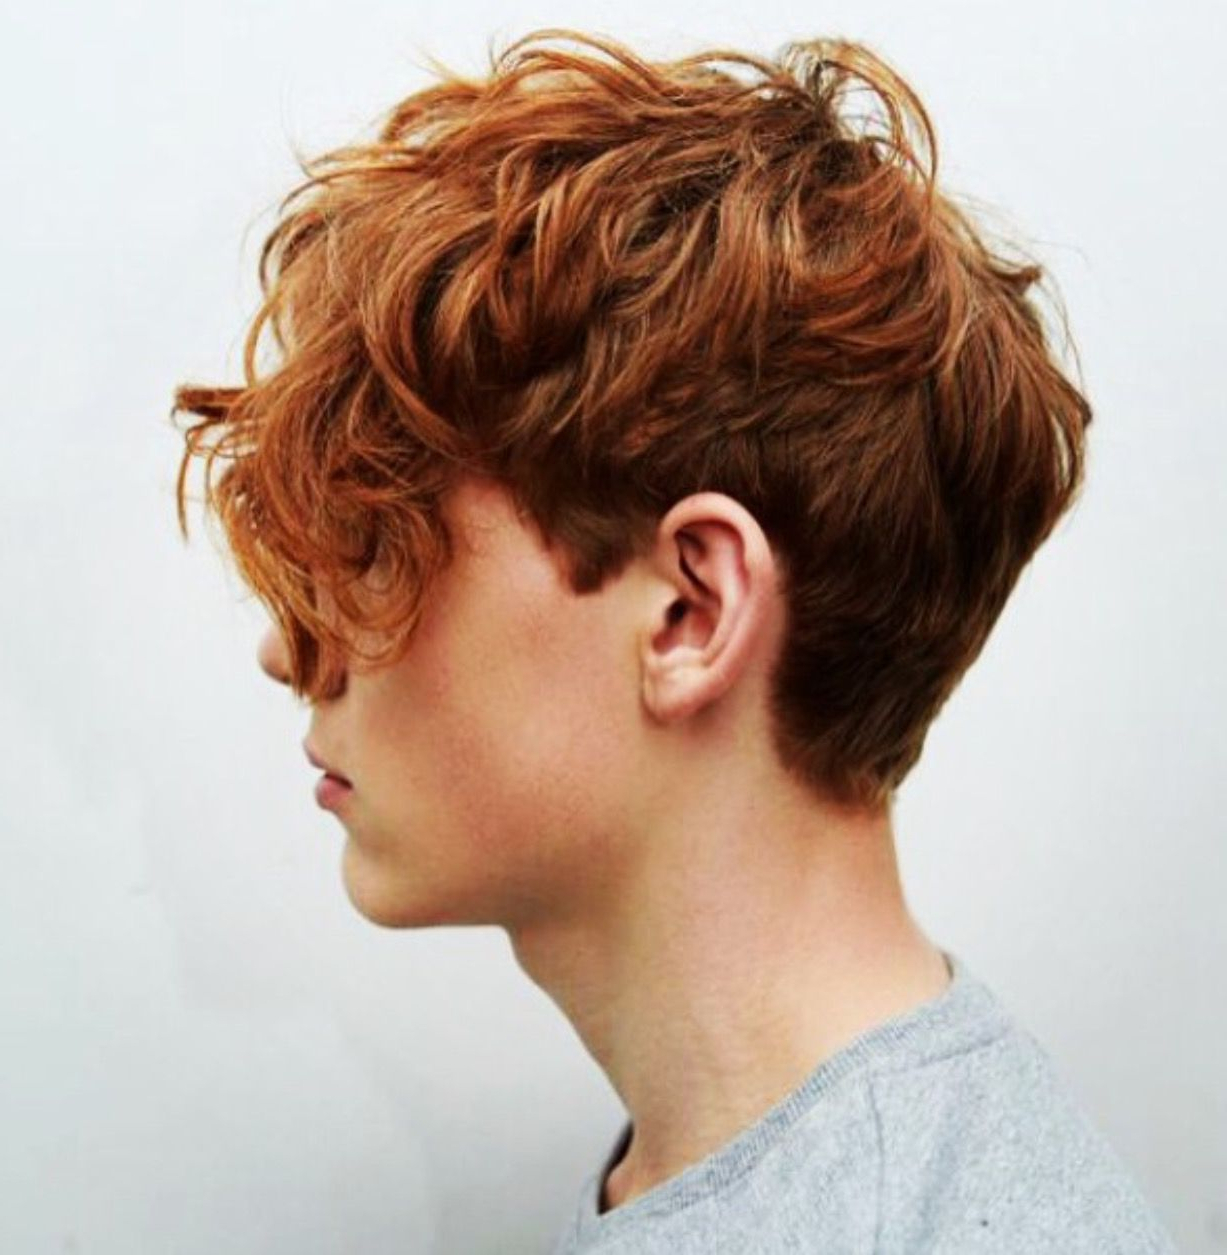 Beau Hair (Ginger) | Beau Churchill In 2018 | Pinterest | Hair Inside Tapered Brown Pixie Hairstyles With Ginger Curls (View 6 of 25)